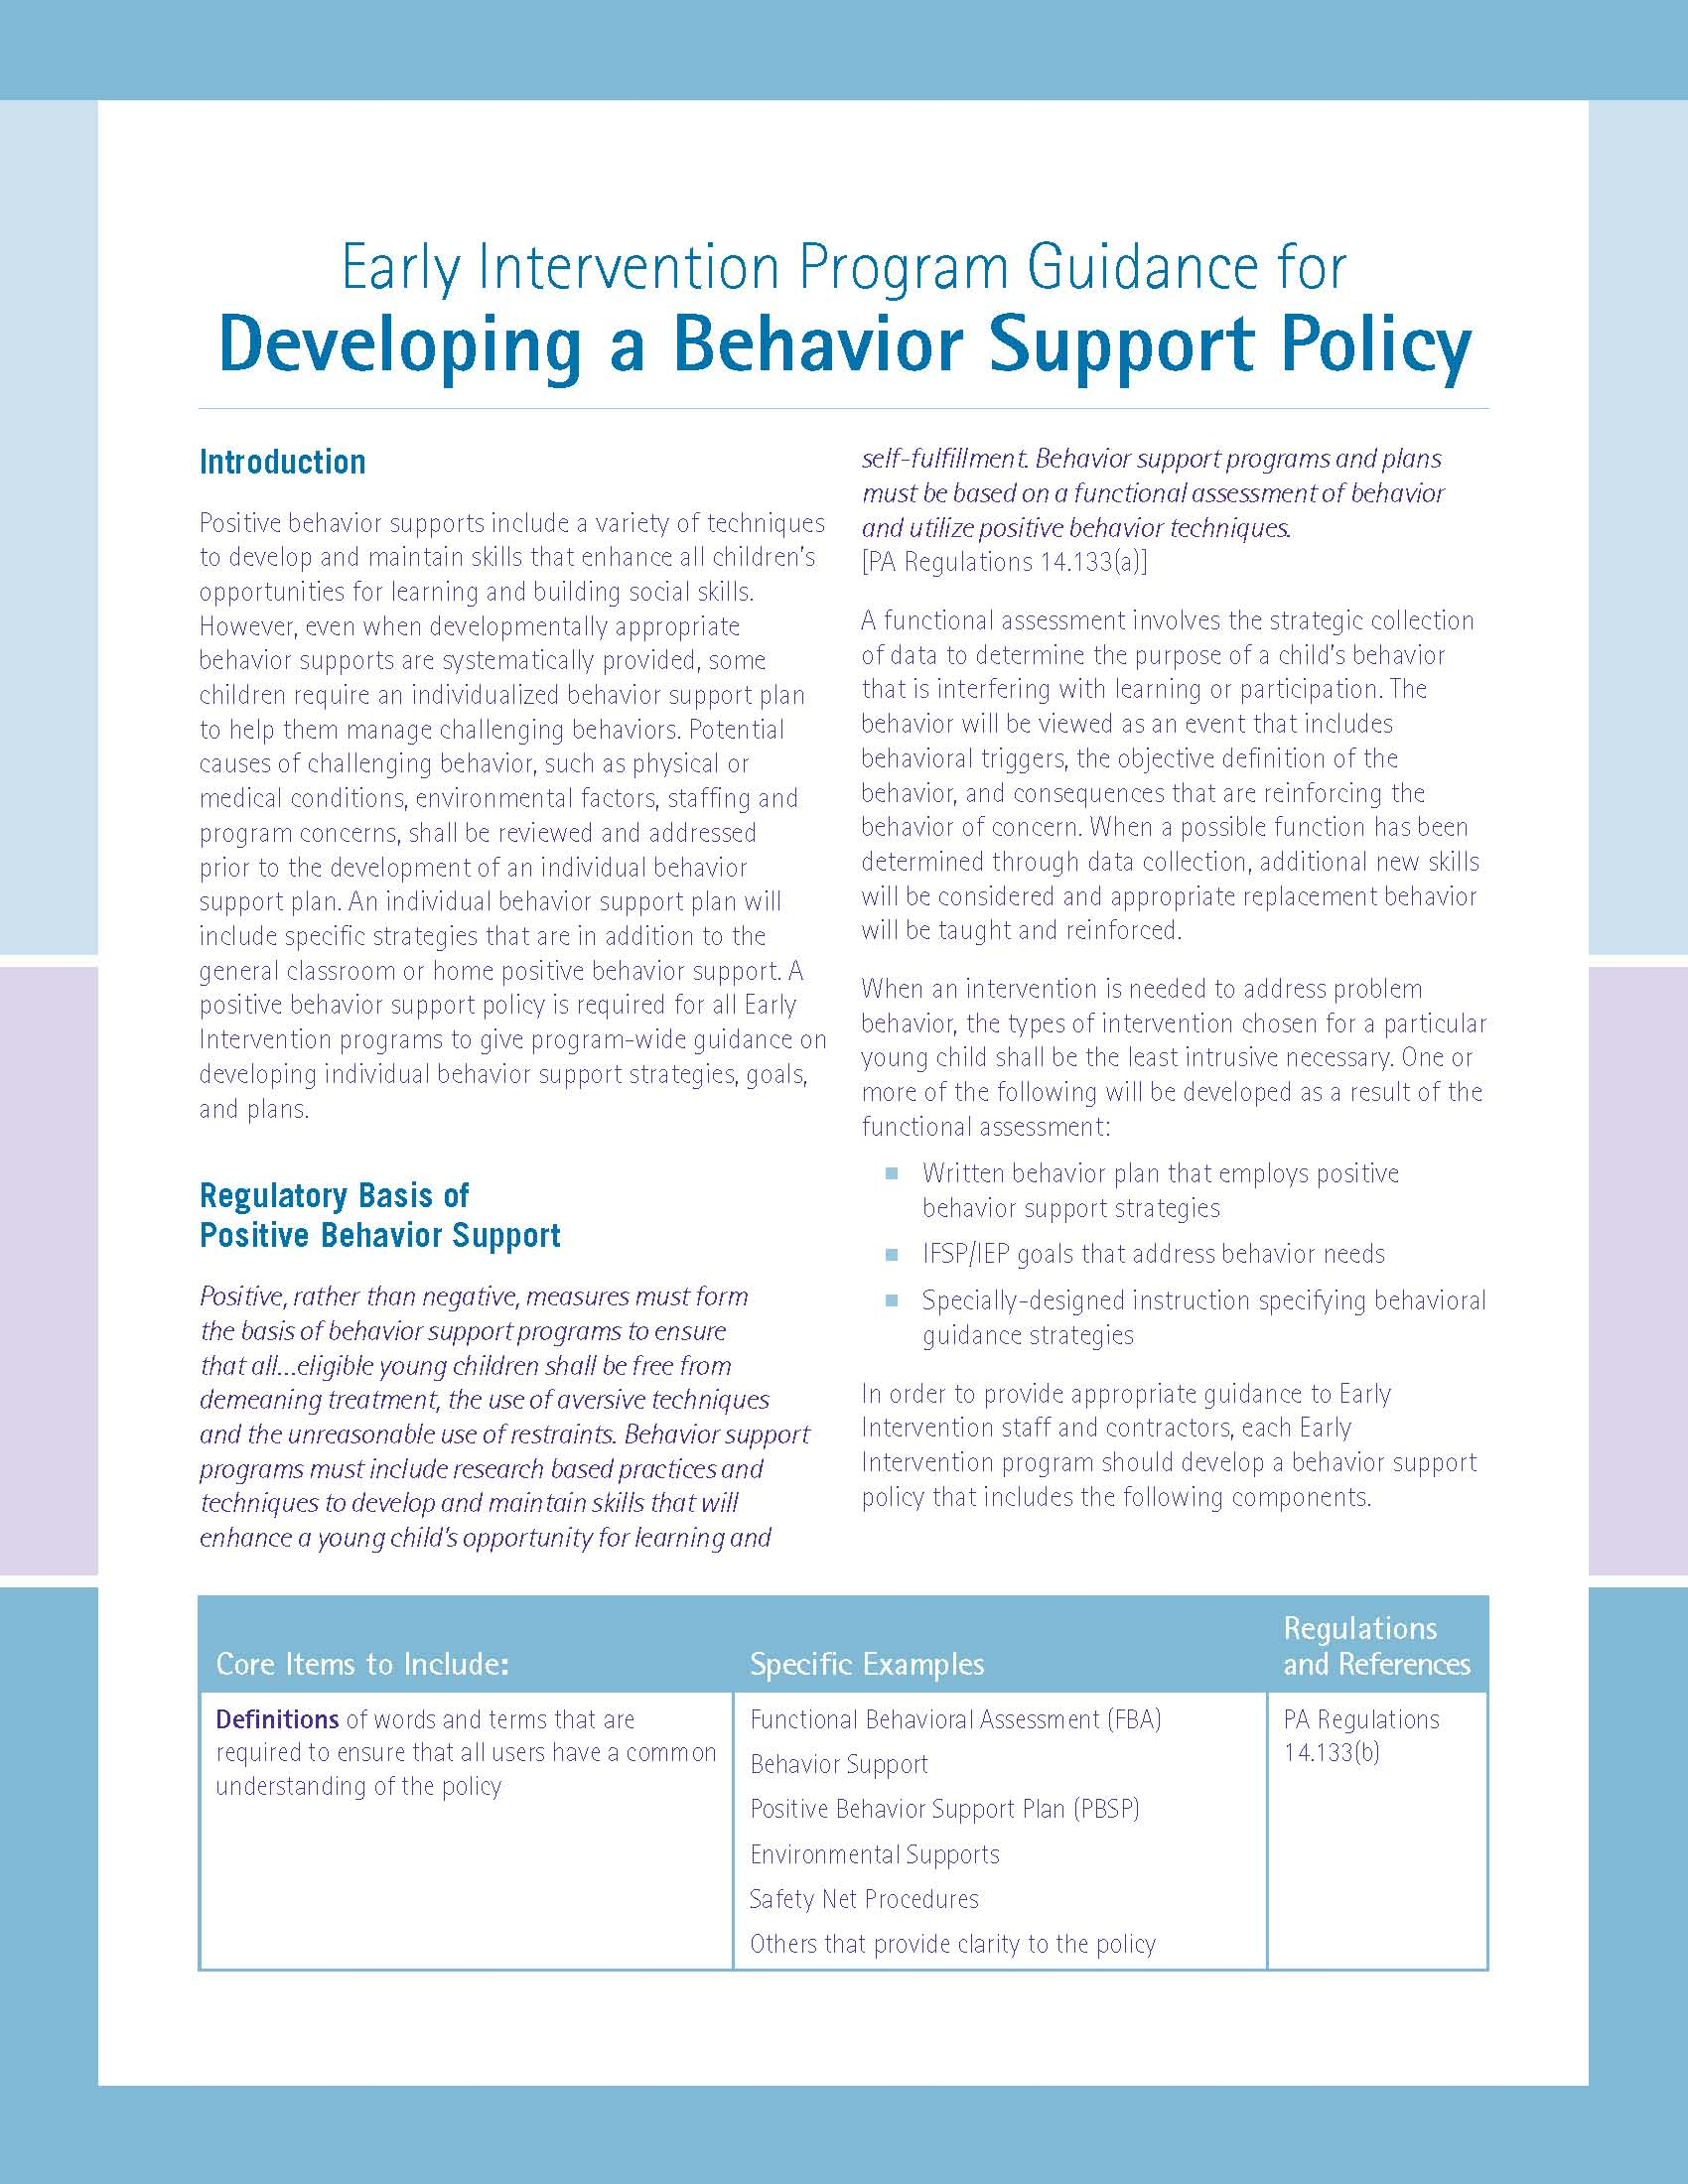 Early Intervention Program Guidance for Developing a Behavior Support Policy